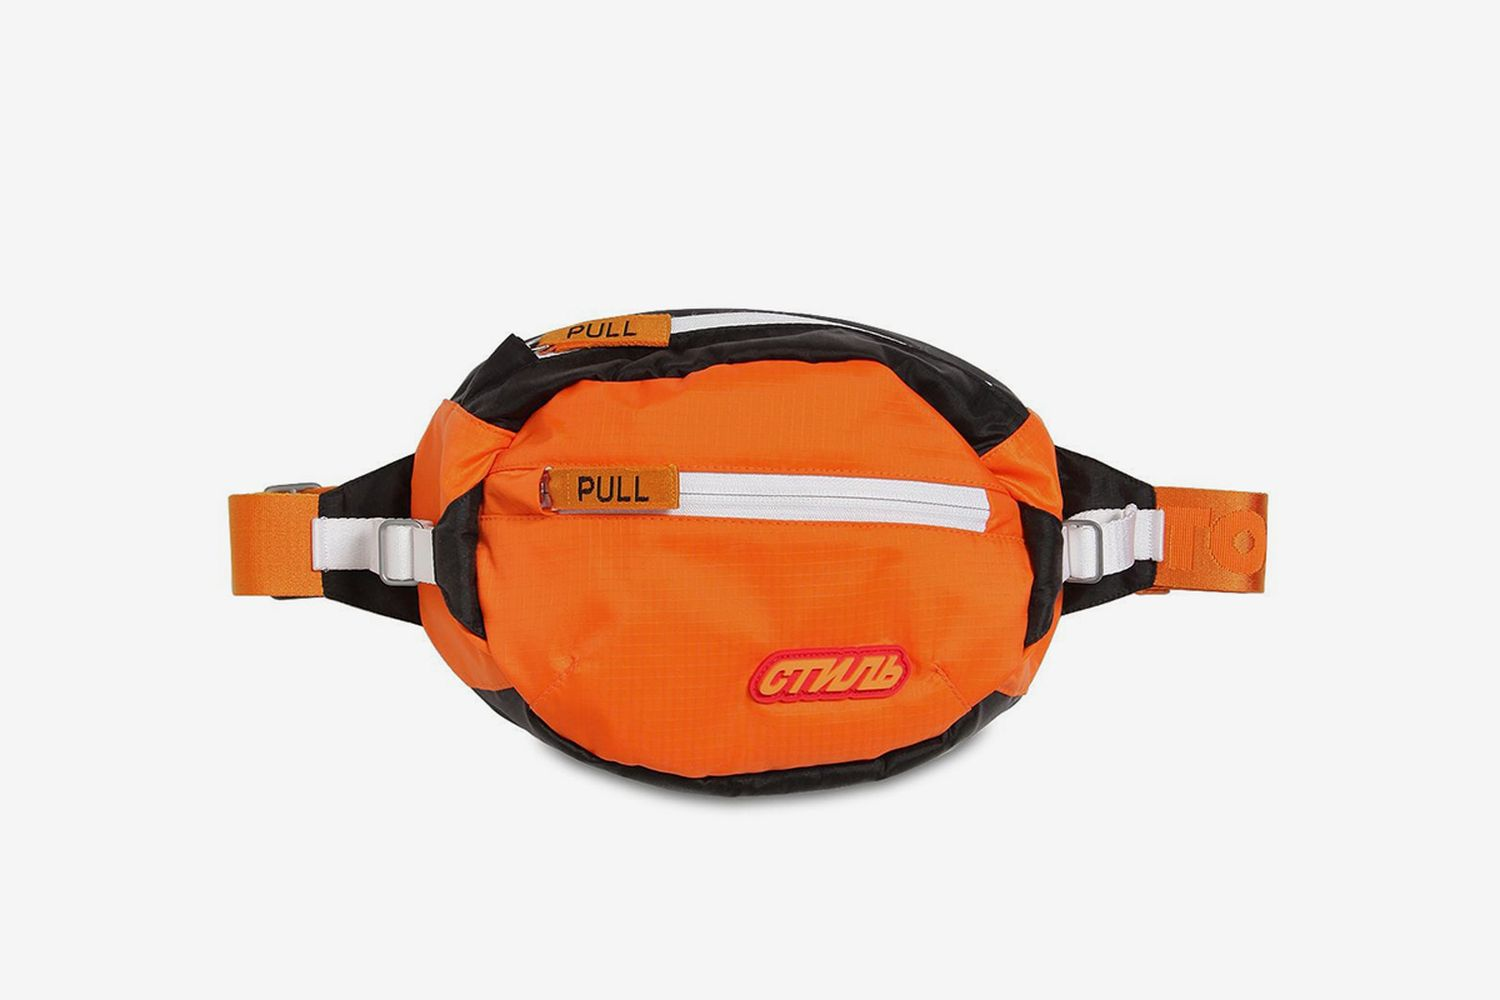 CTNMB Padded Belt Bag